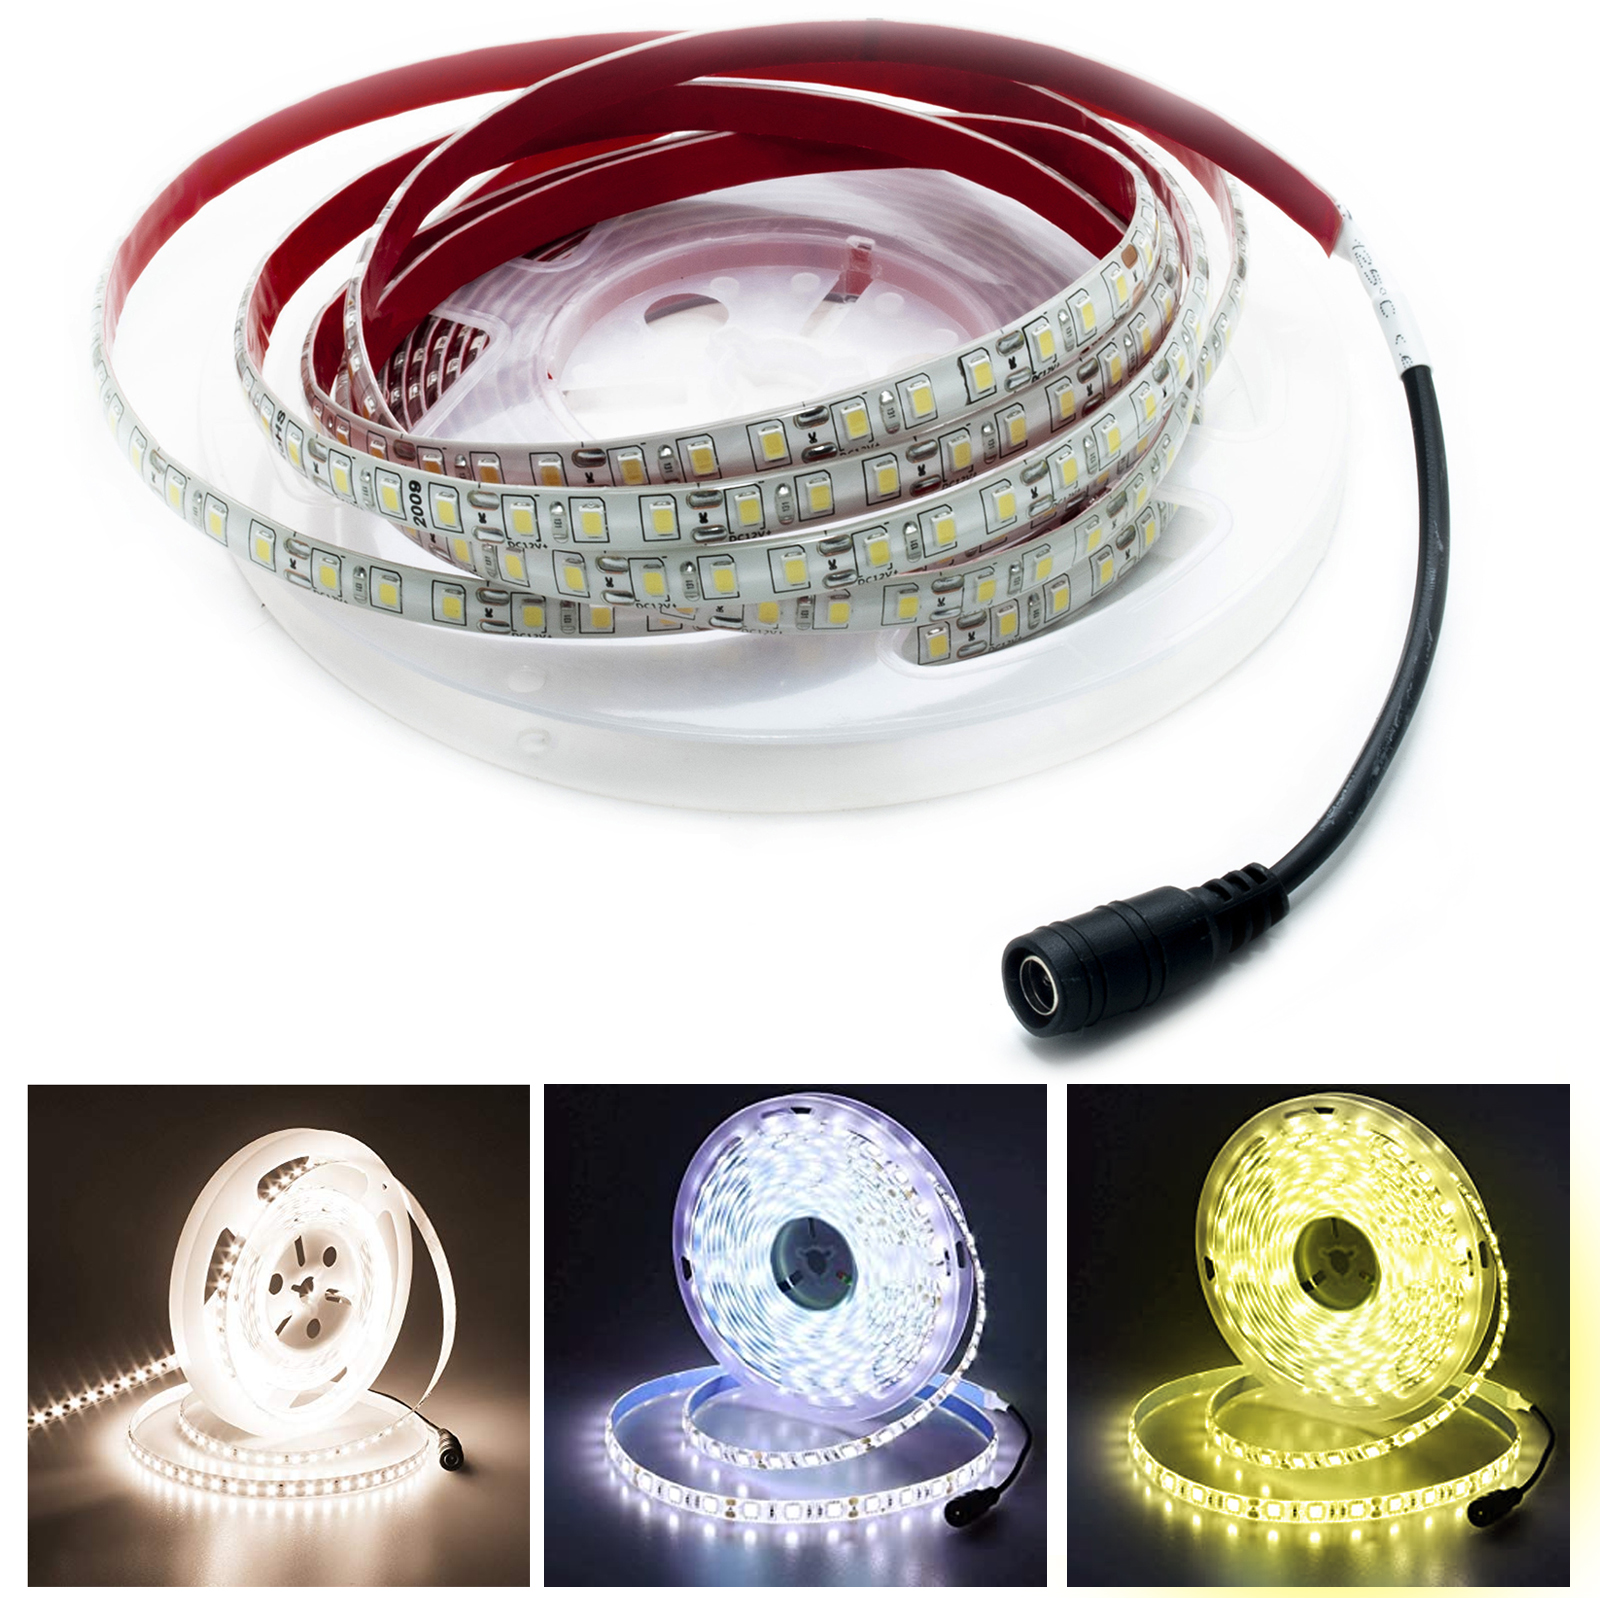 Waterproof LED strip 50W high brightness 4500lm 12V outdoor lights IP55 5mt